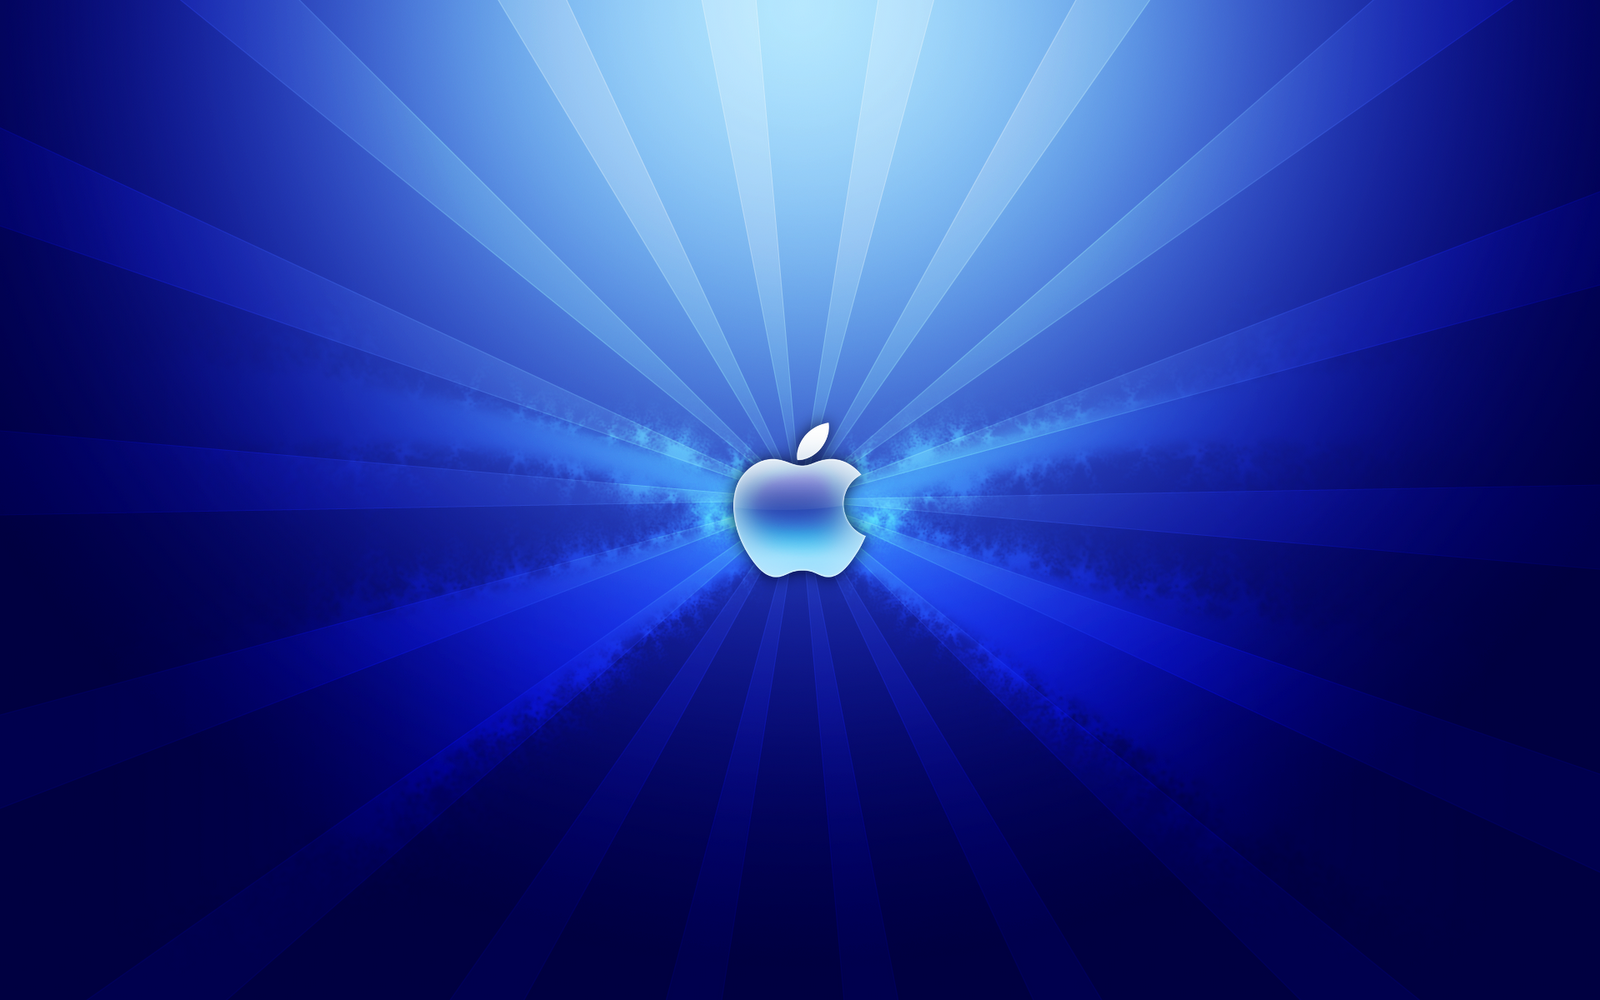 Blue Apple Laptop Wallpaper here you can see Light Blue Apple Laptop 1600x1000